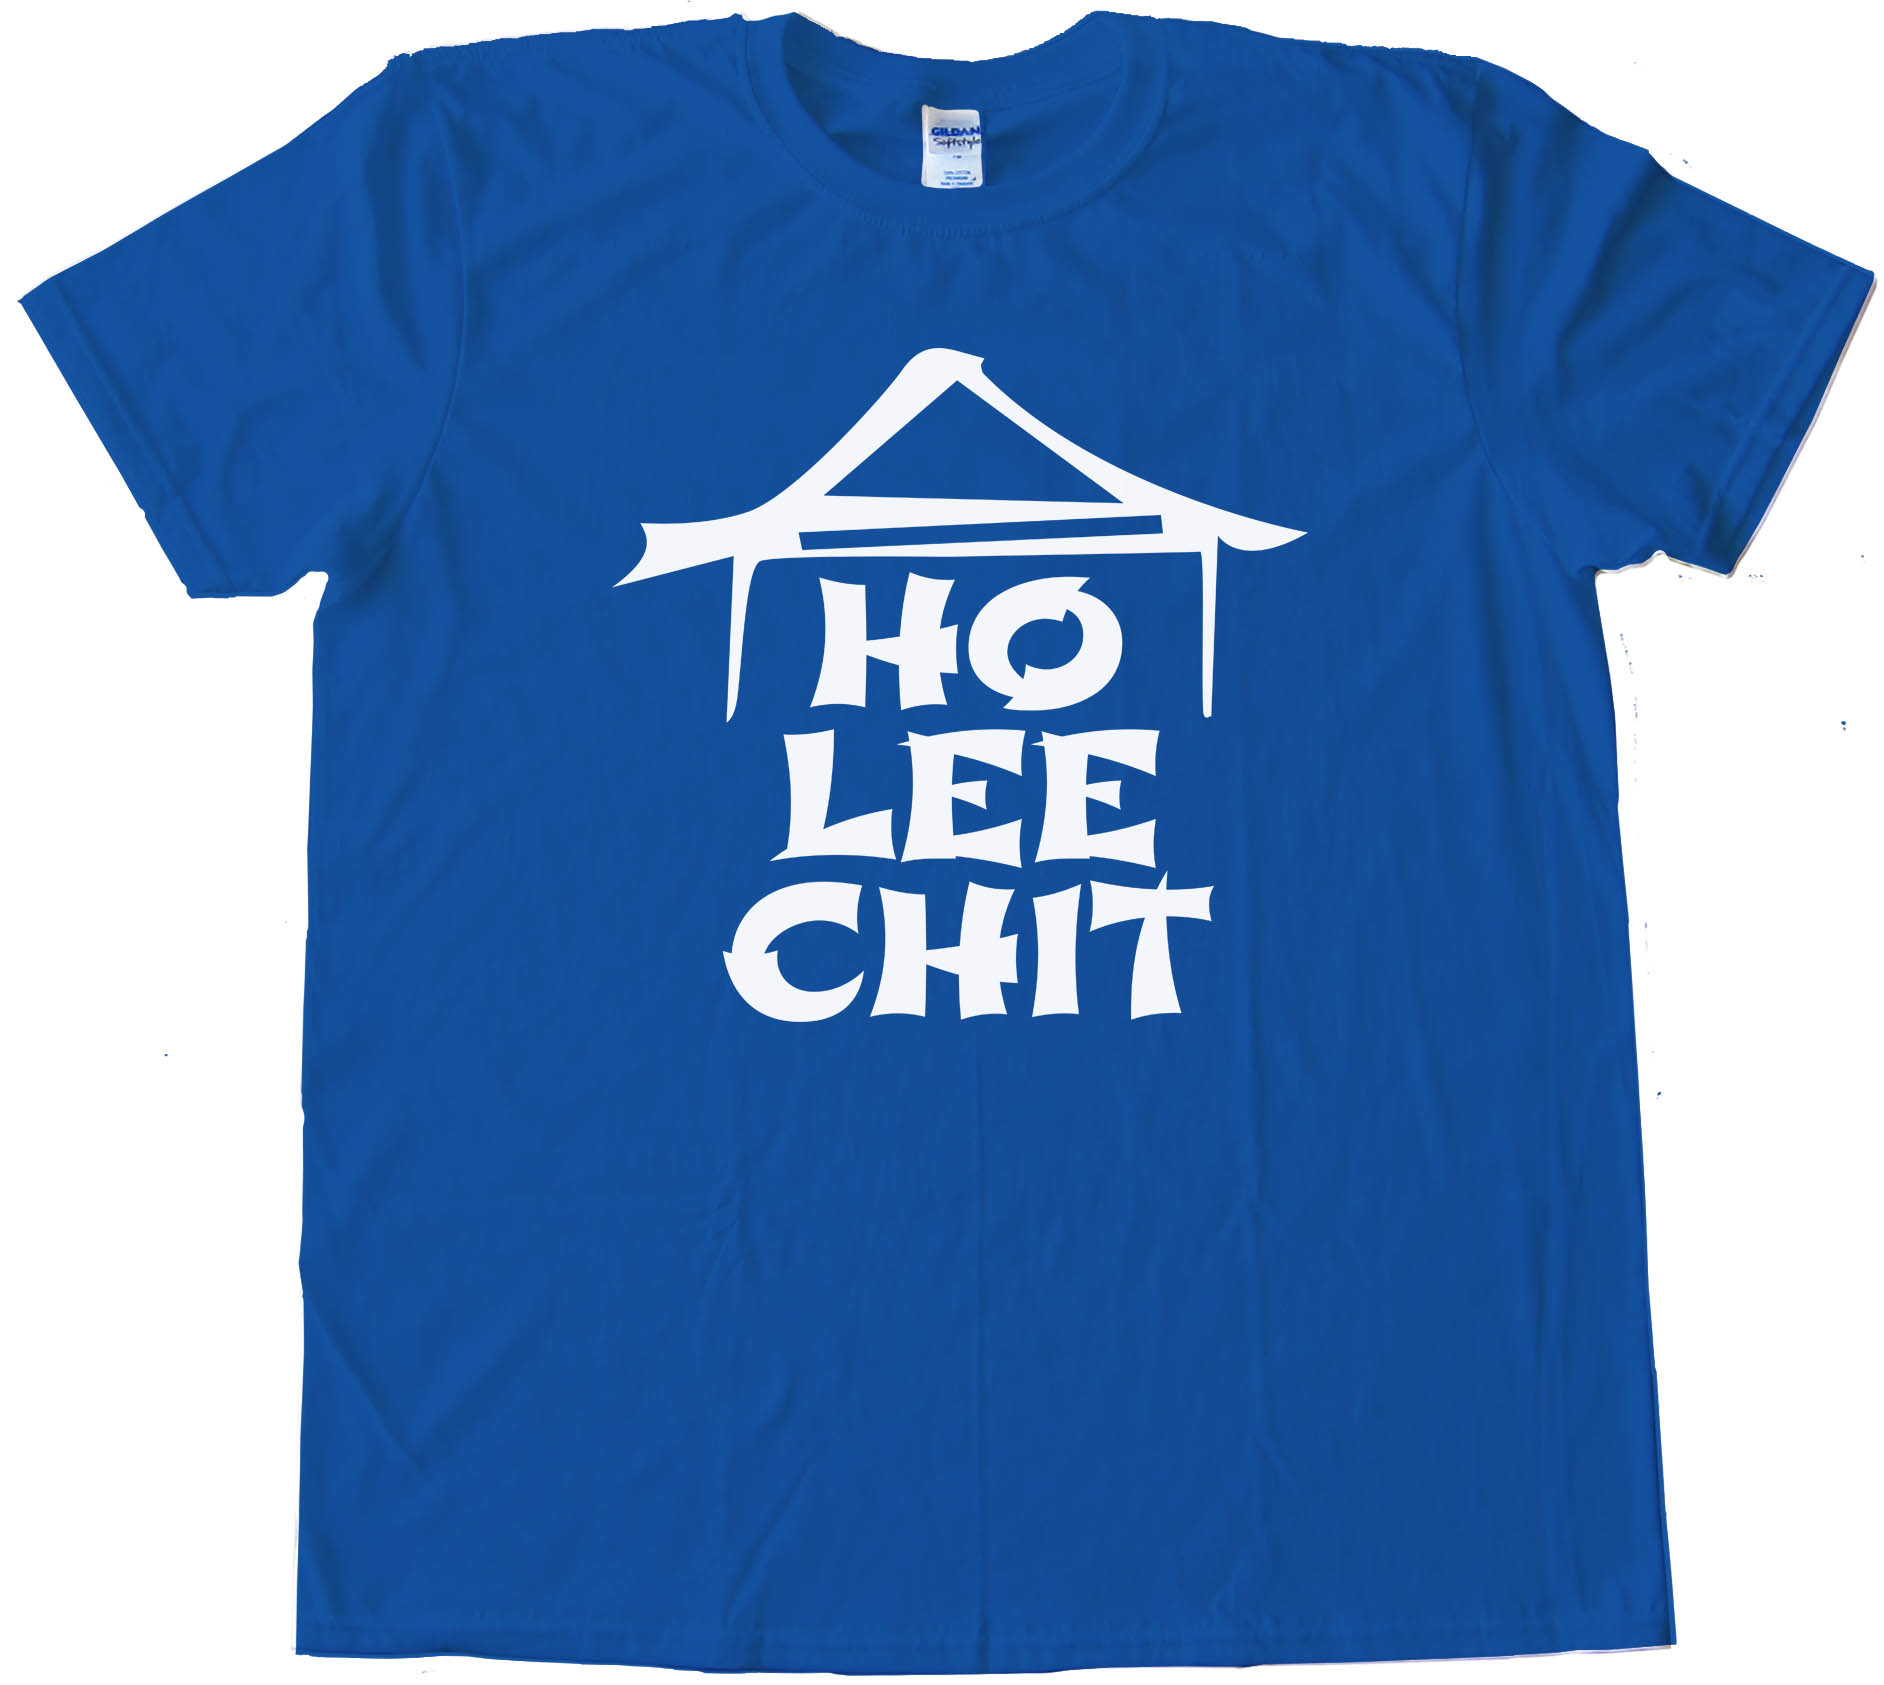 Ho Lee Chit Chinese Restaurant